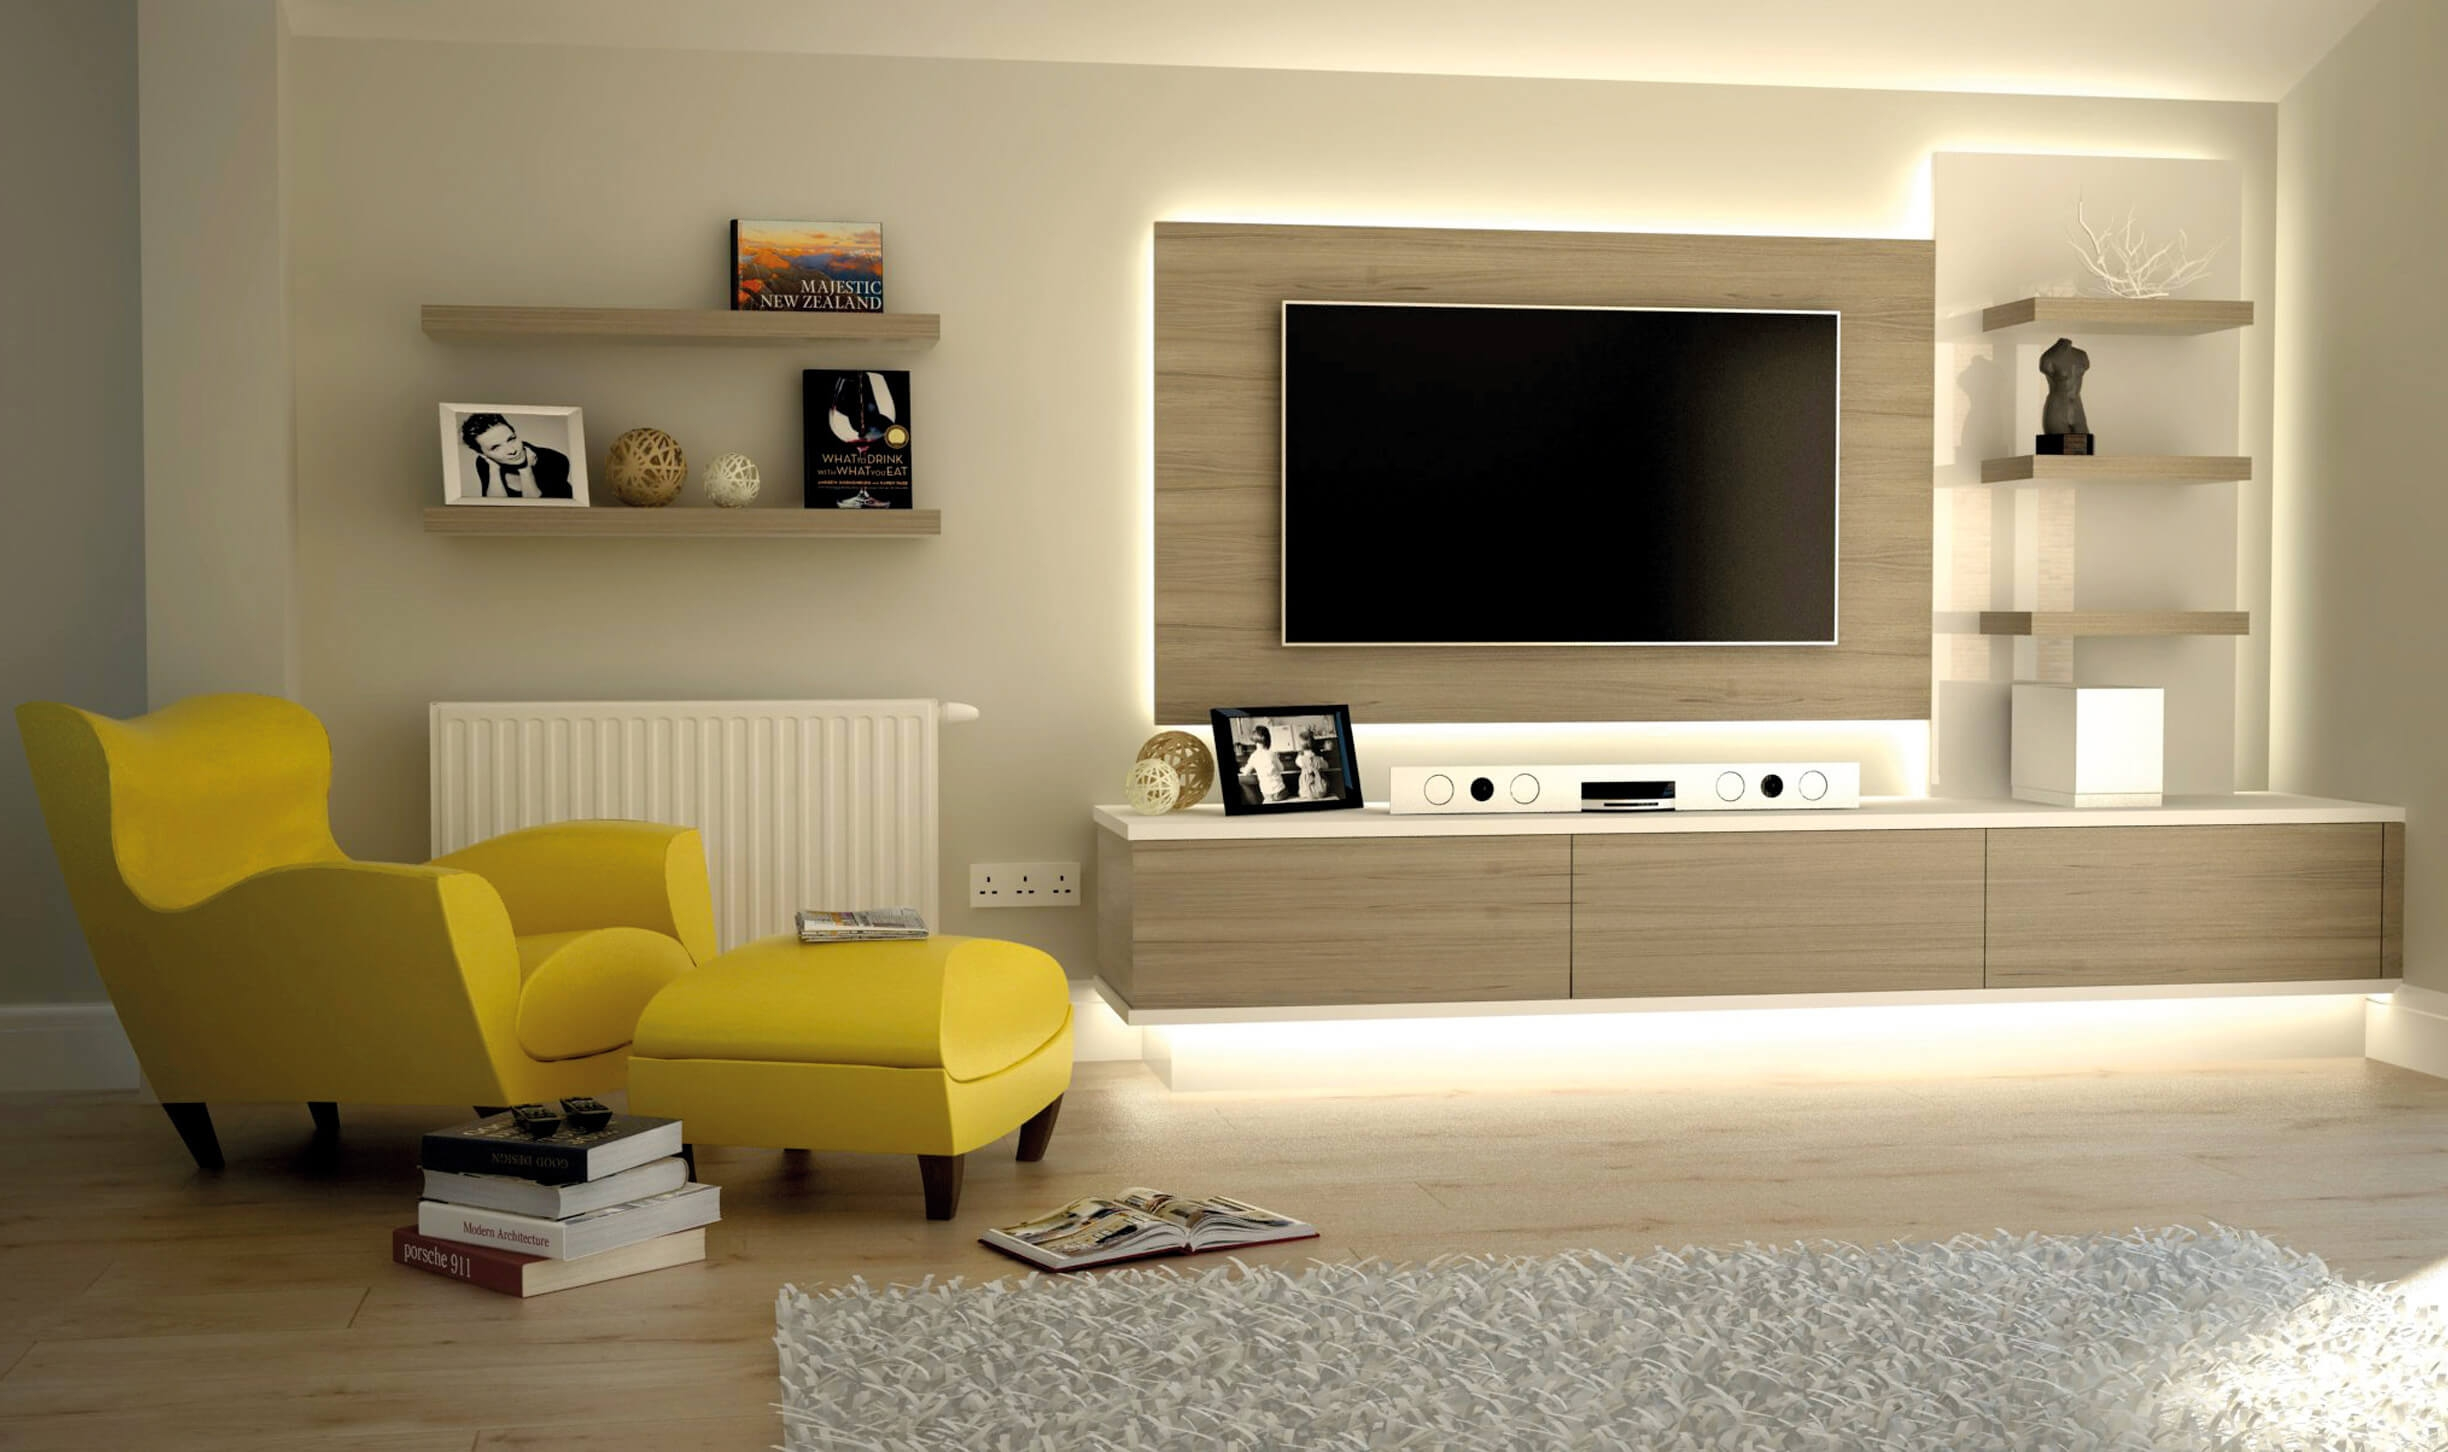 Bespoke Tv Cabinets Bookcases And Storage Units For Over 50 Within Bespoke Tv Stand (#2 of 15)